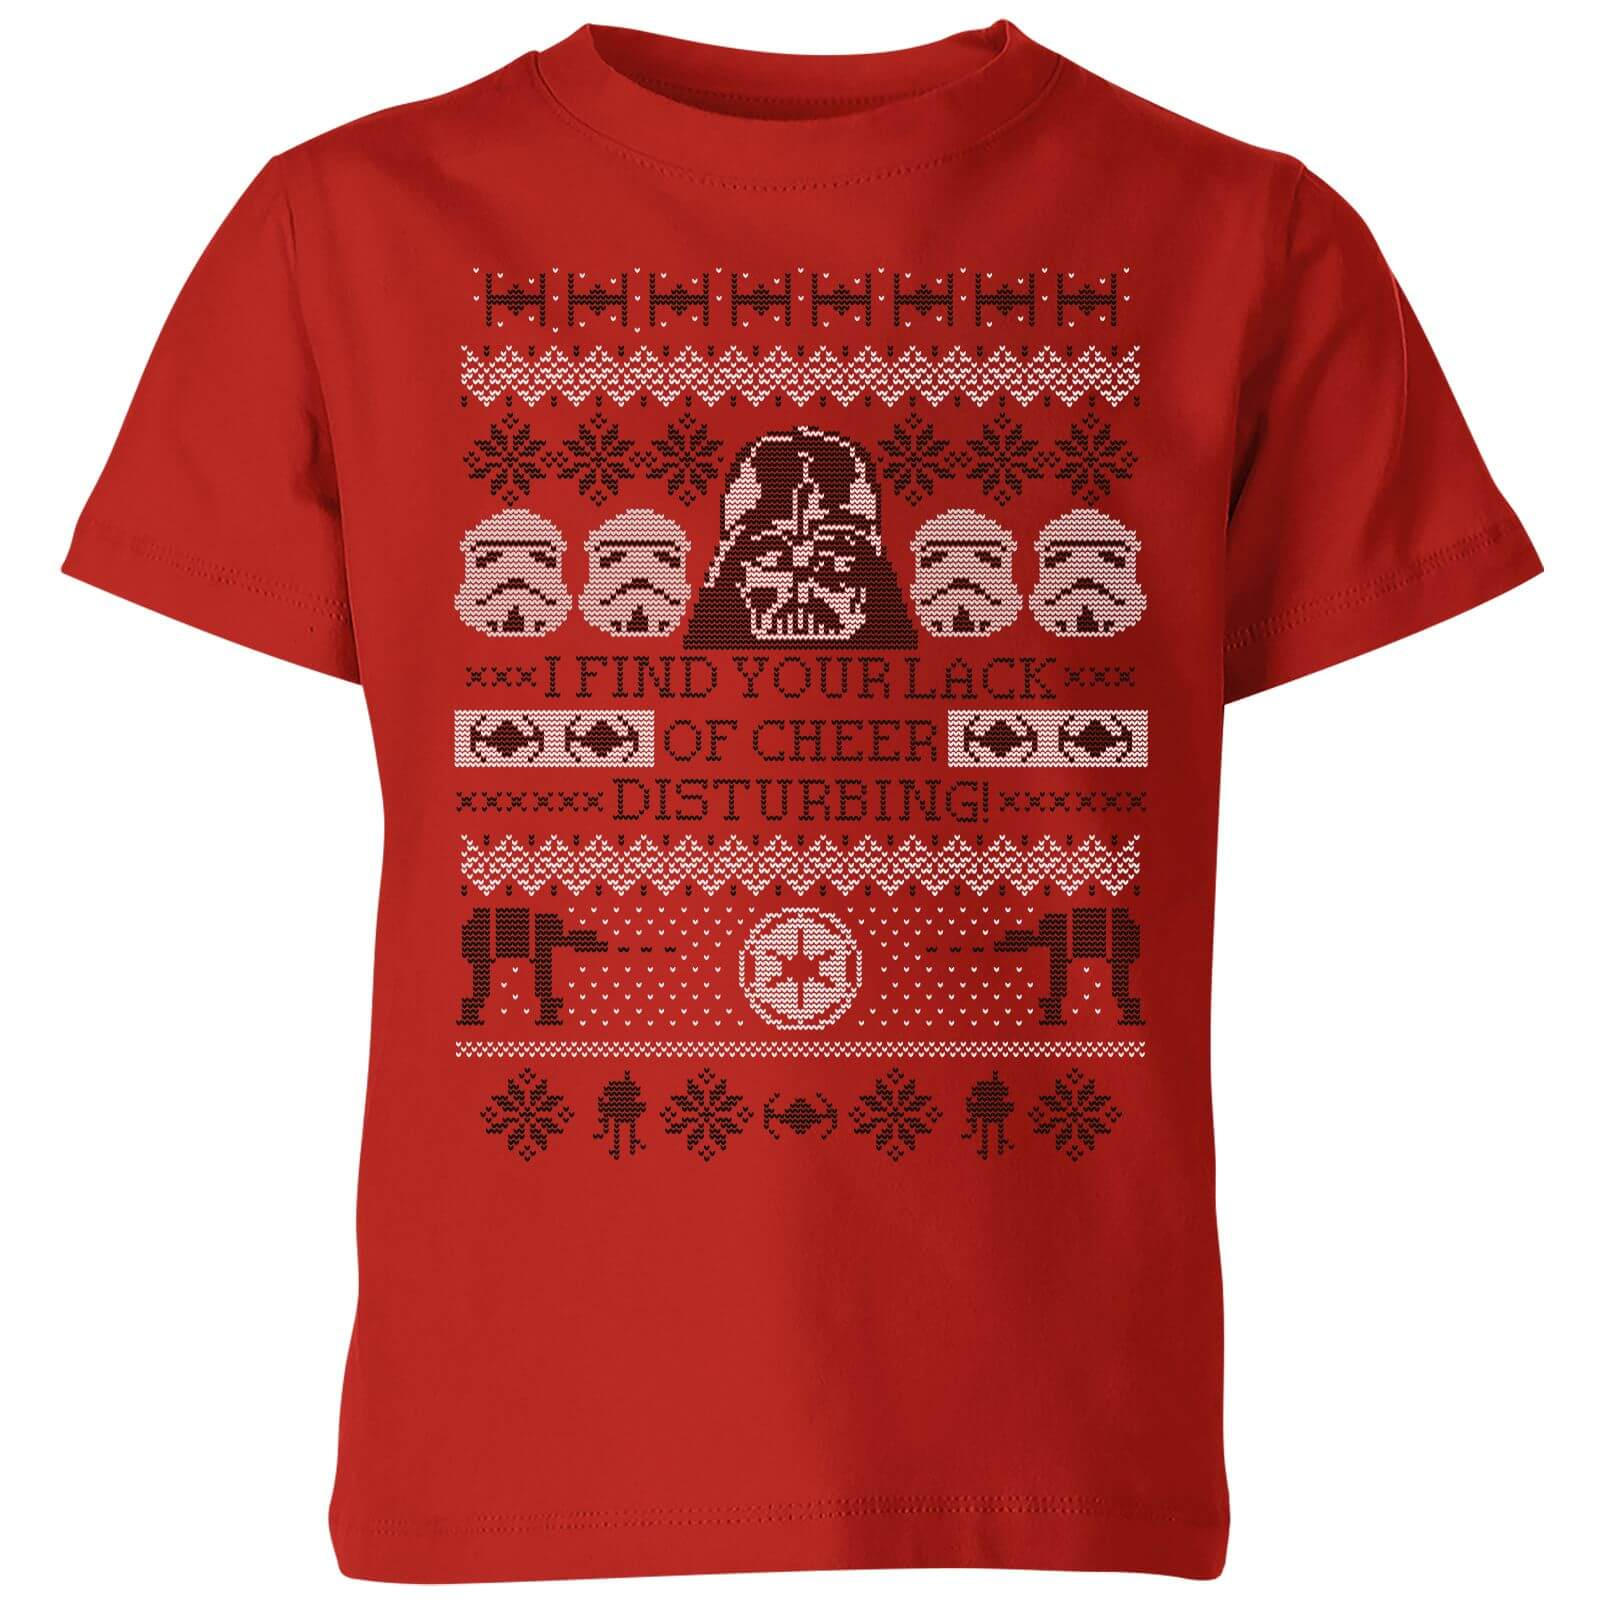 Star Wars I Find Your Lack Of Cheer Disturbing Kids Christmas T-Shirt - Red - 11-12 años - Rojo de Star Wars